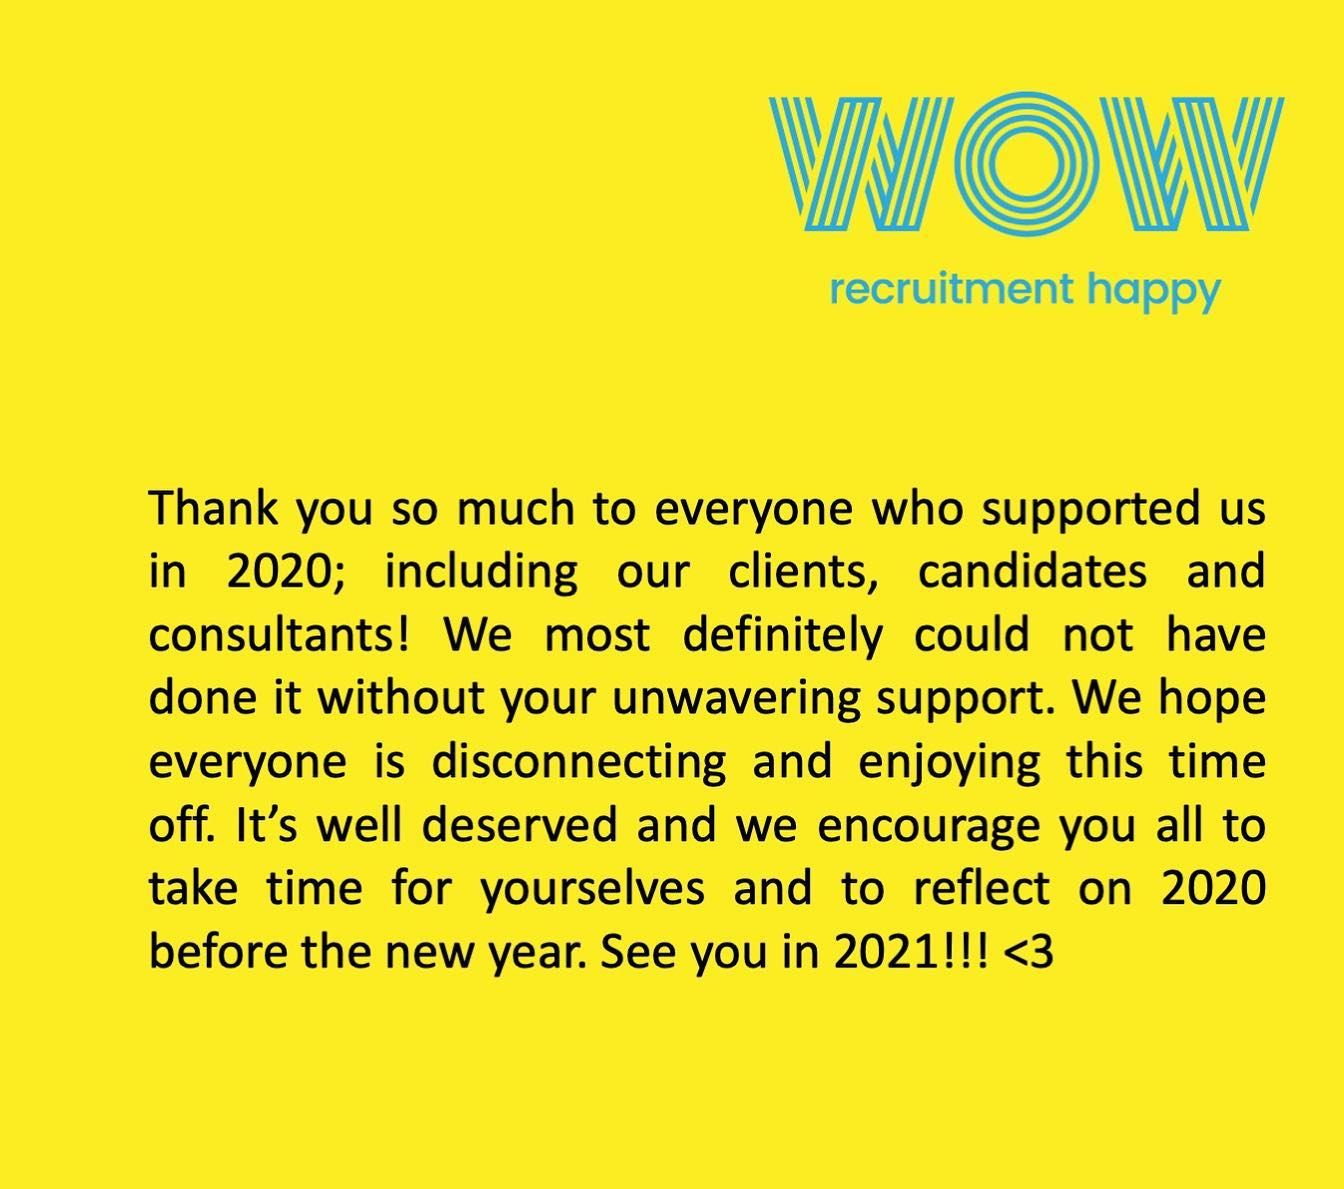 Thank you  We're truely grateful and can't wait to see what 2021 has in store for you all! Looking forward to continuing the journey with you!